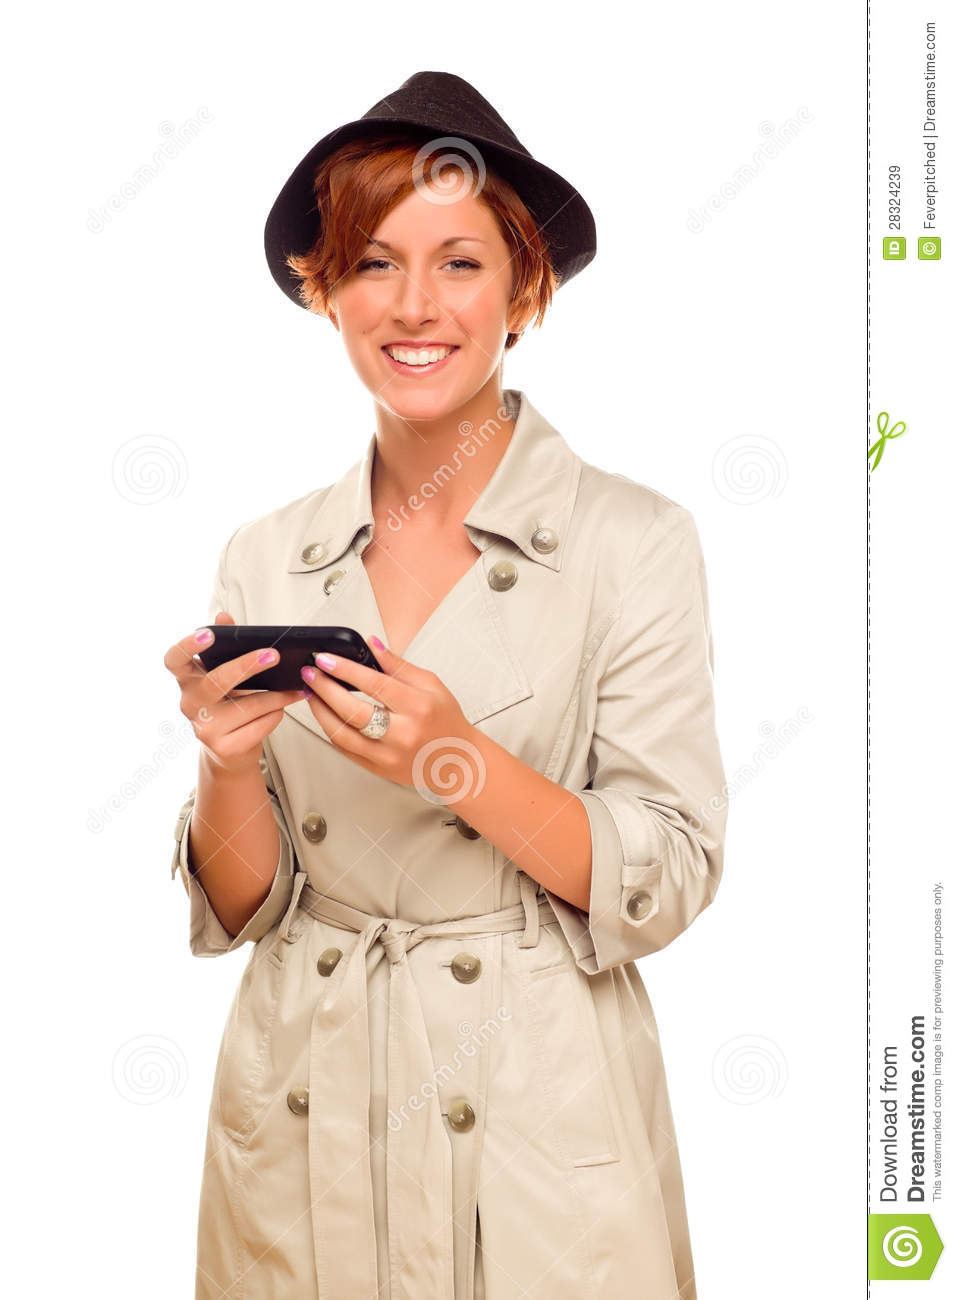 Woman Holding A Cell Phone On White Background Royalty